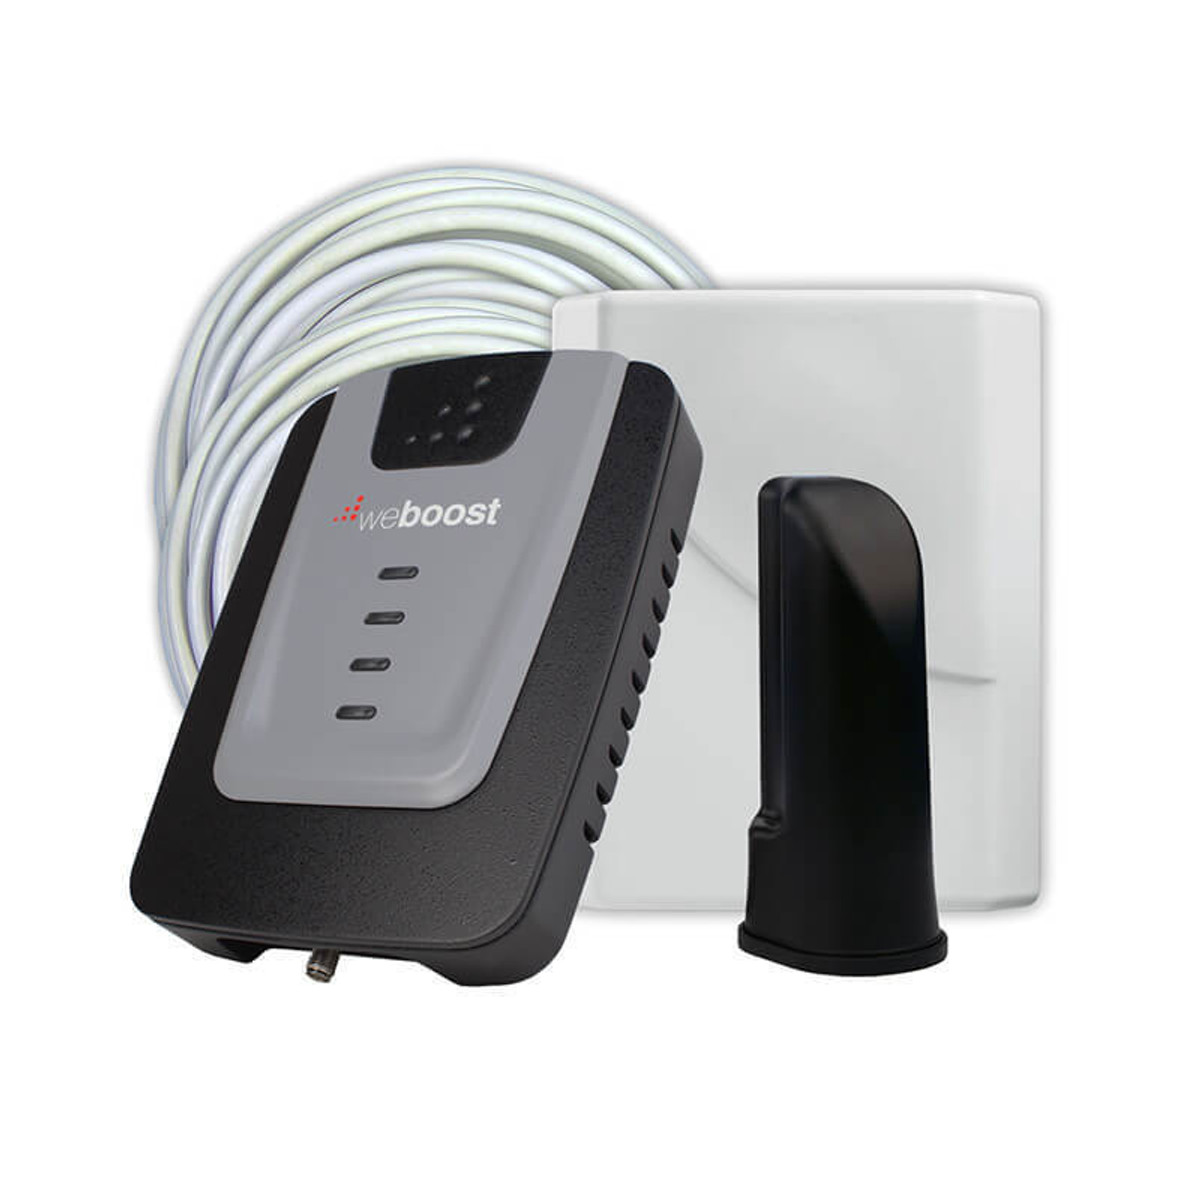 weBoost Home 4G Cell Phone Signal Booster, Refurbished | 470101R